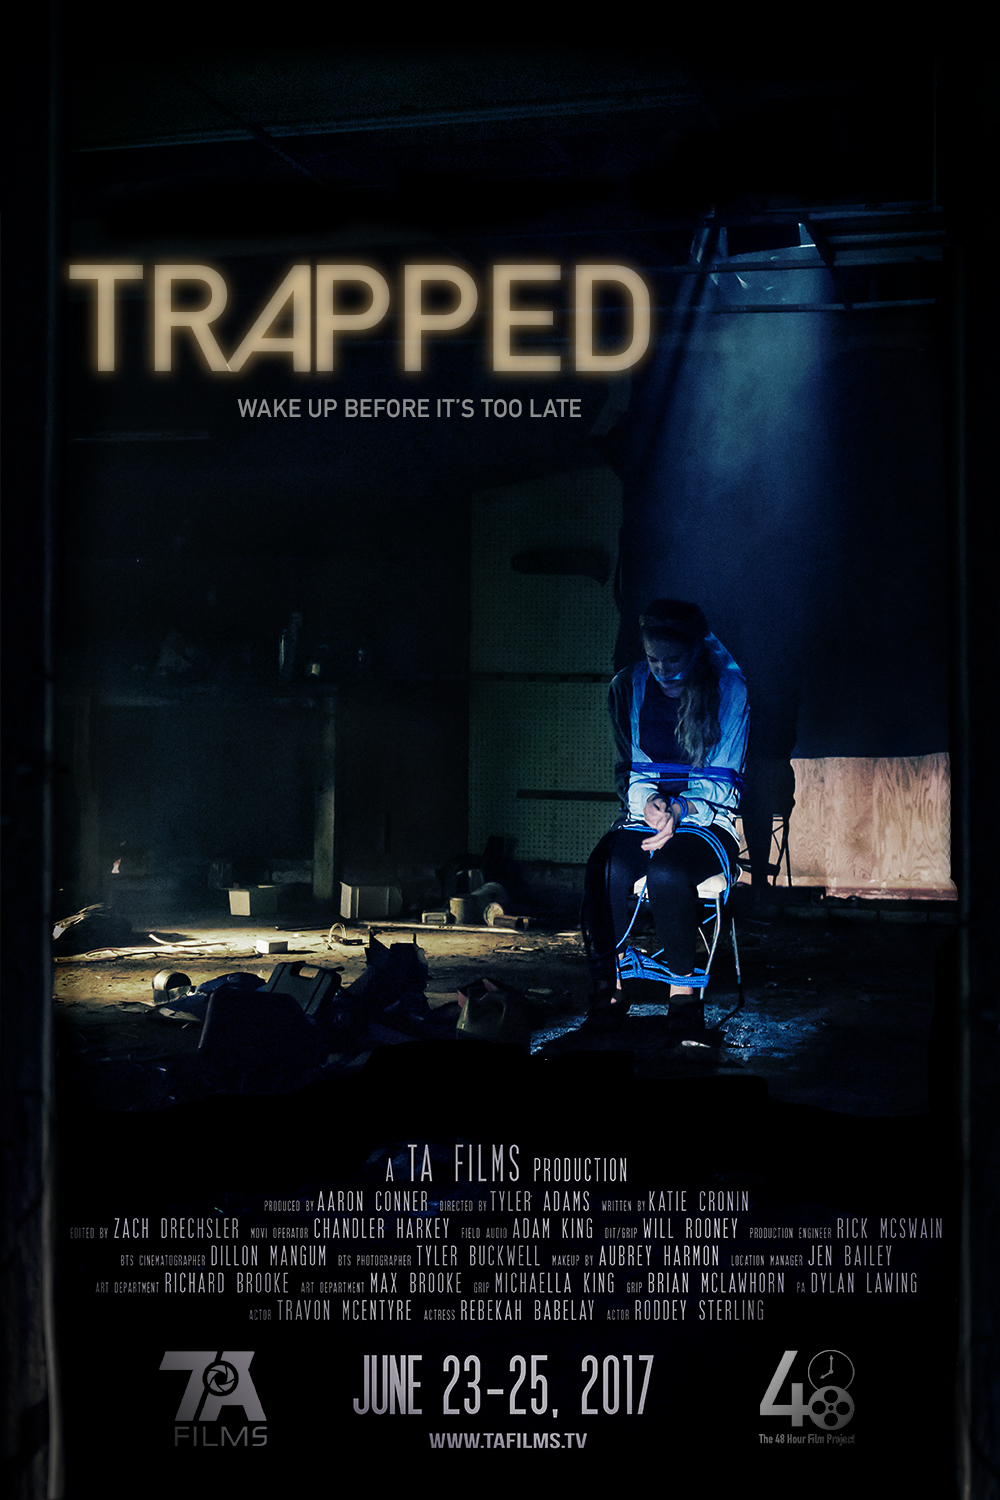 48 Hour Film Festival: Trapped